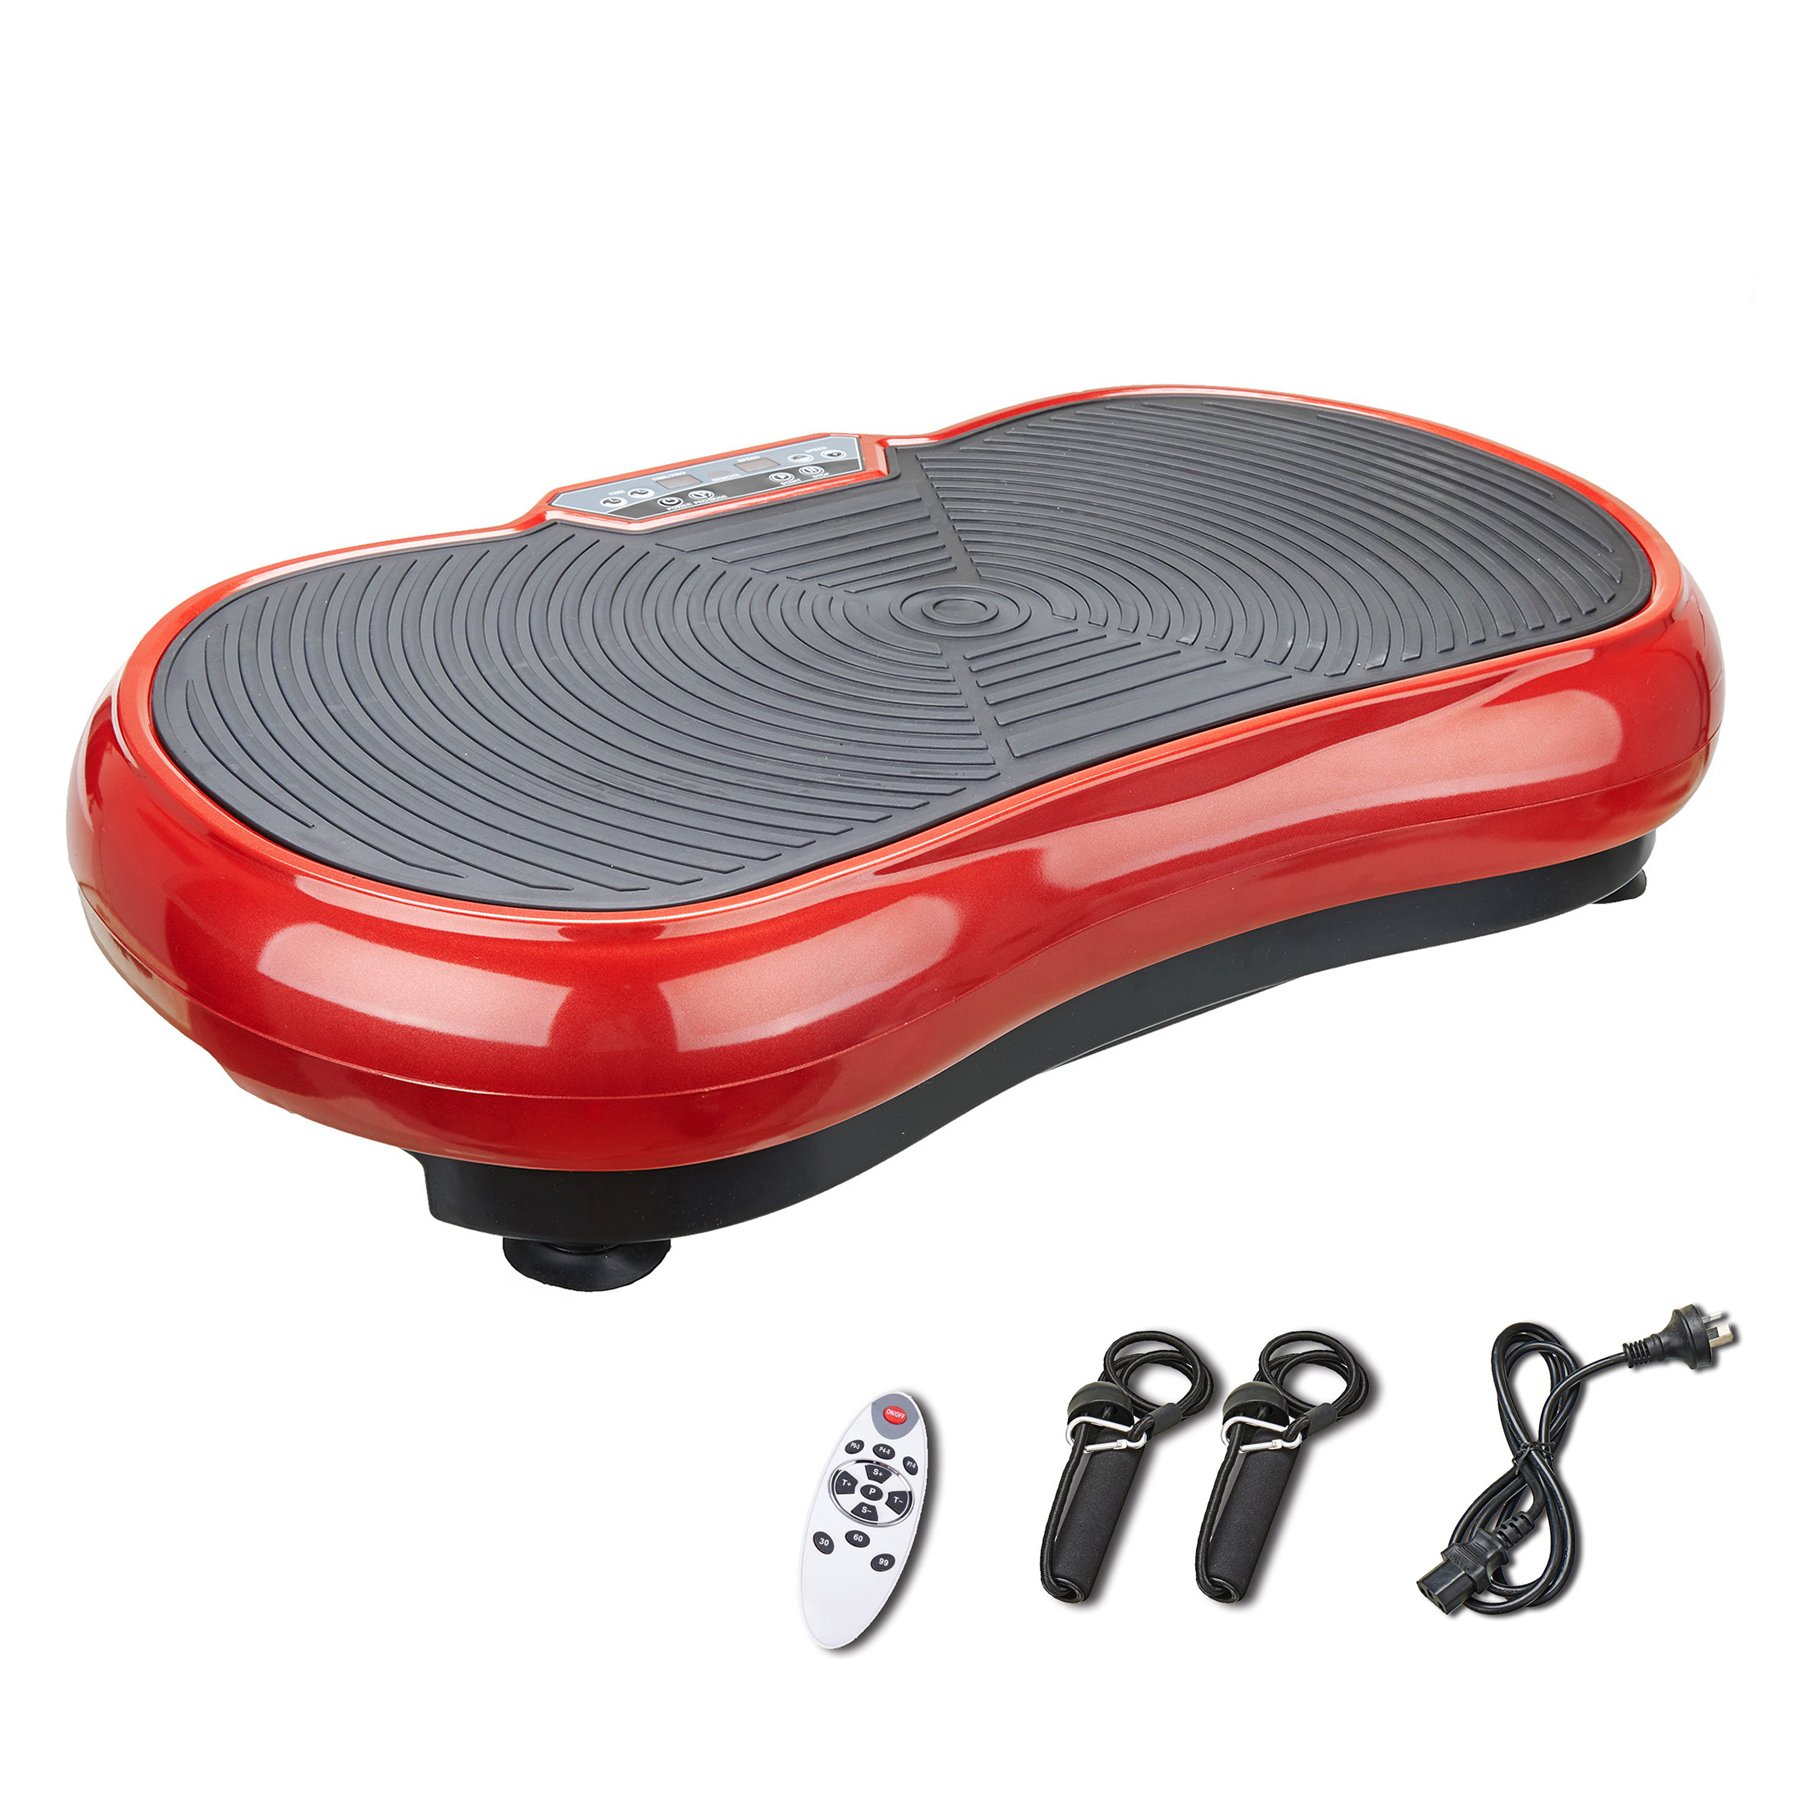 Pinty Fitness Vibration Platform - Whole Body Vibration Machine Crazy Fit Vibration Plate with Remote Control and Resistance Bands